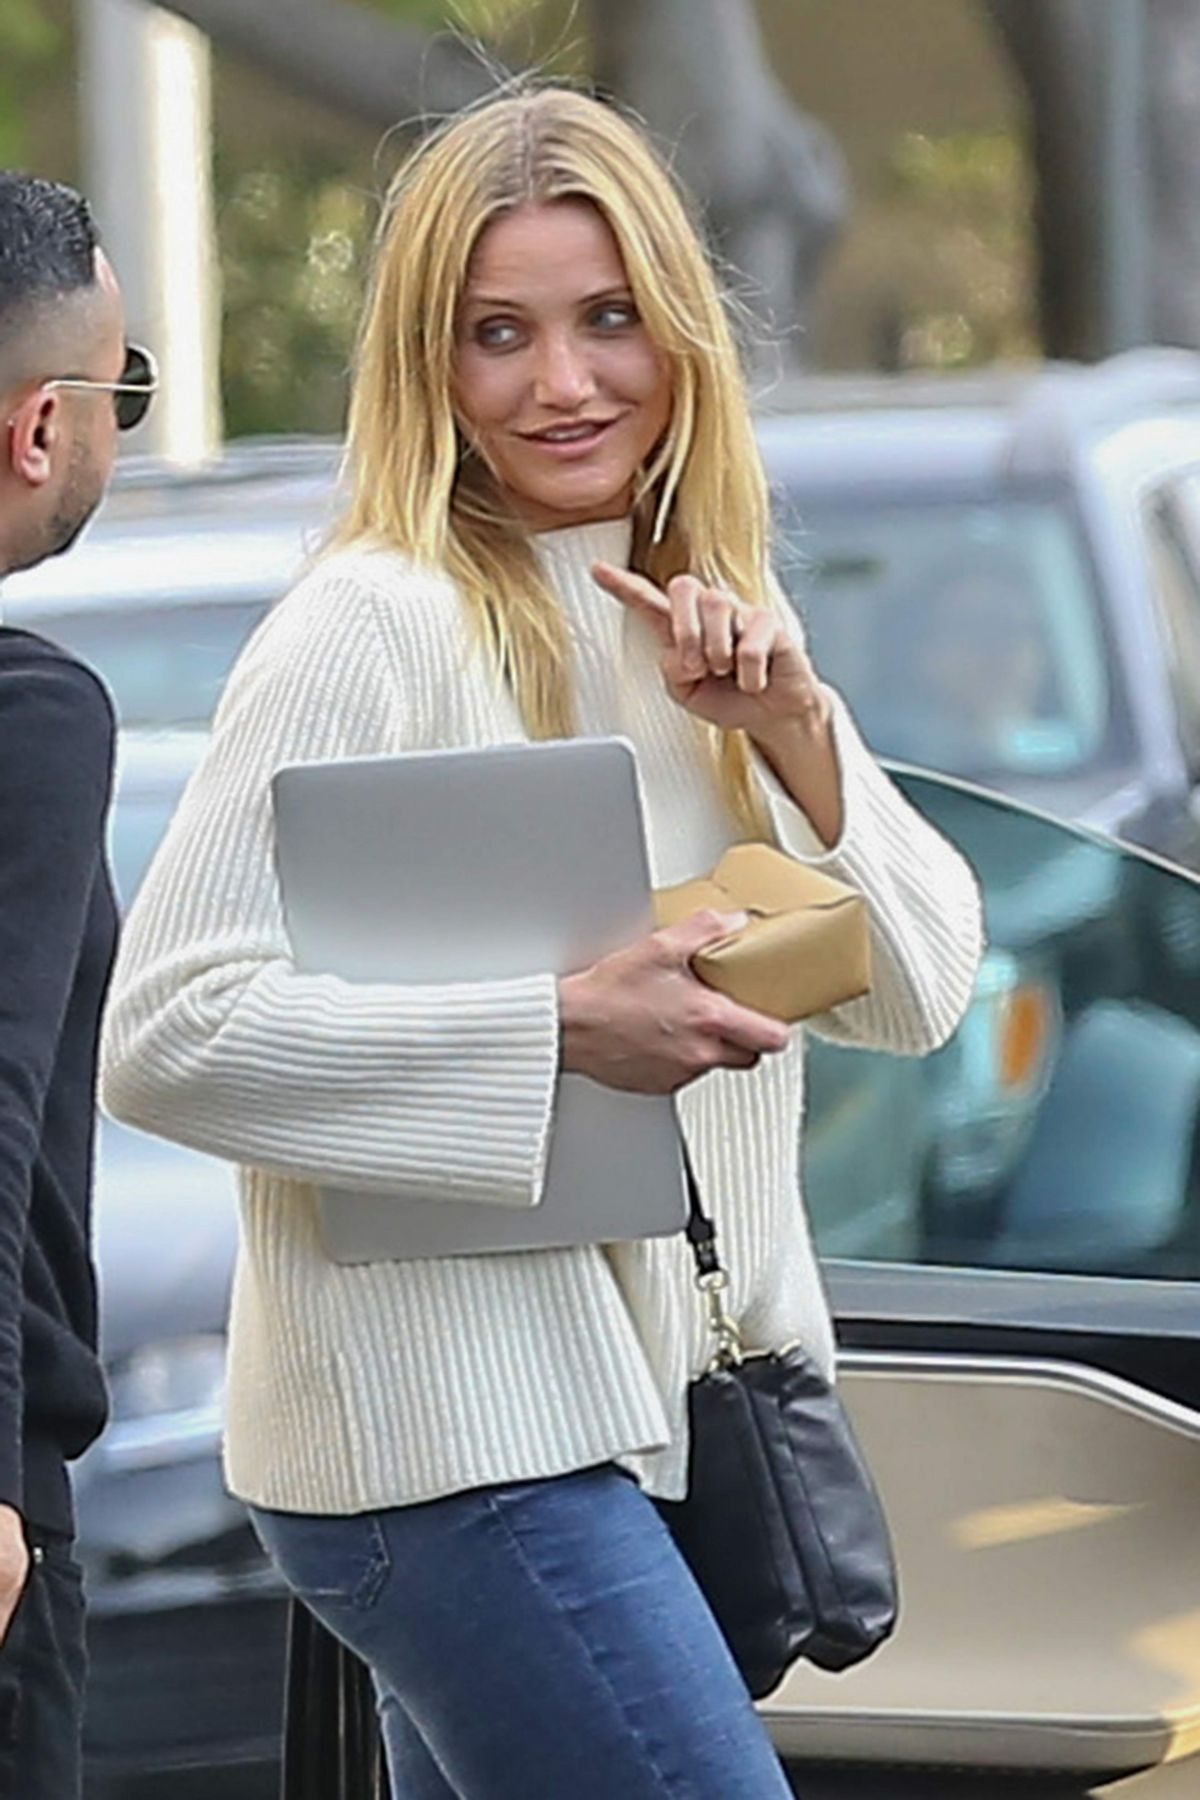 CAMERON DIAZ Leaves A.O.C. Restaurant in West Hollywood 04/22/2015